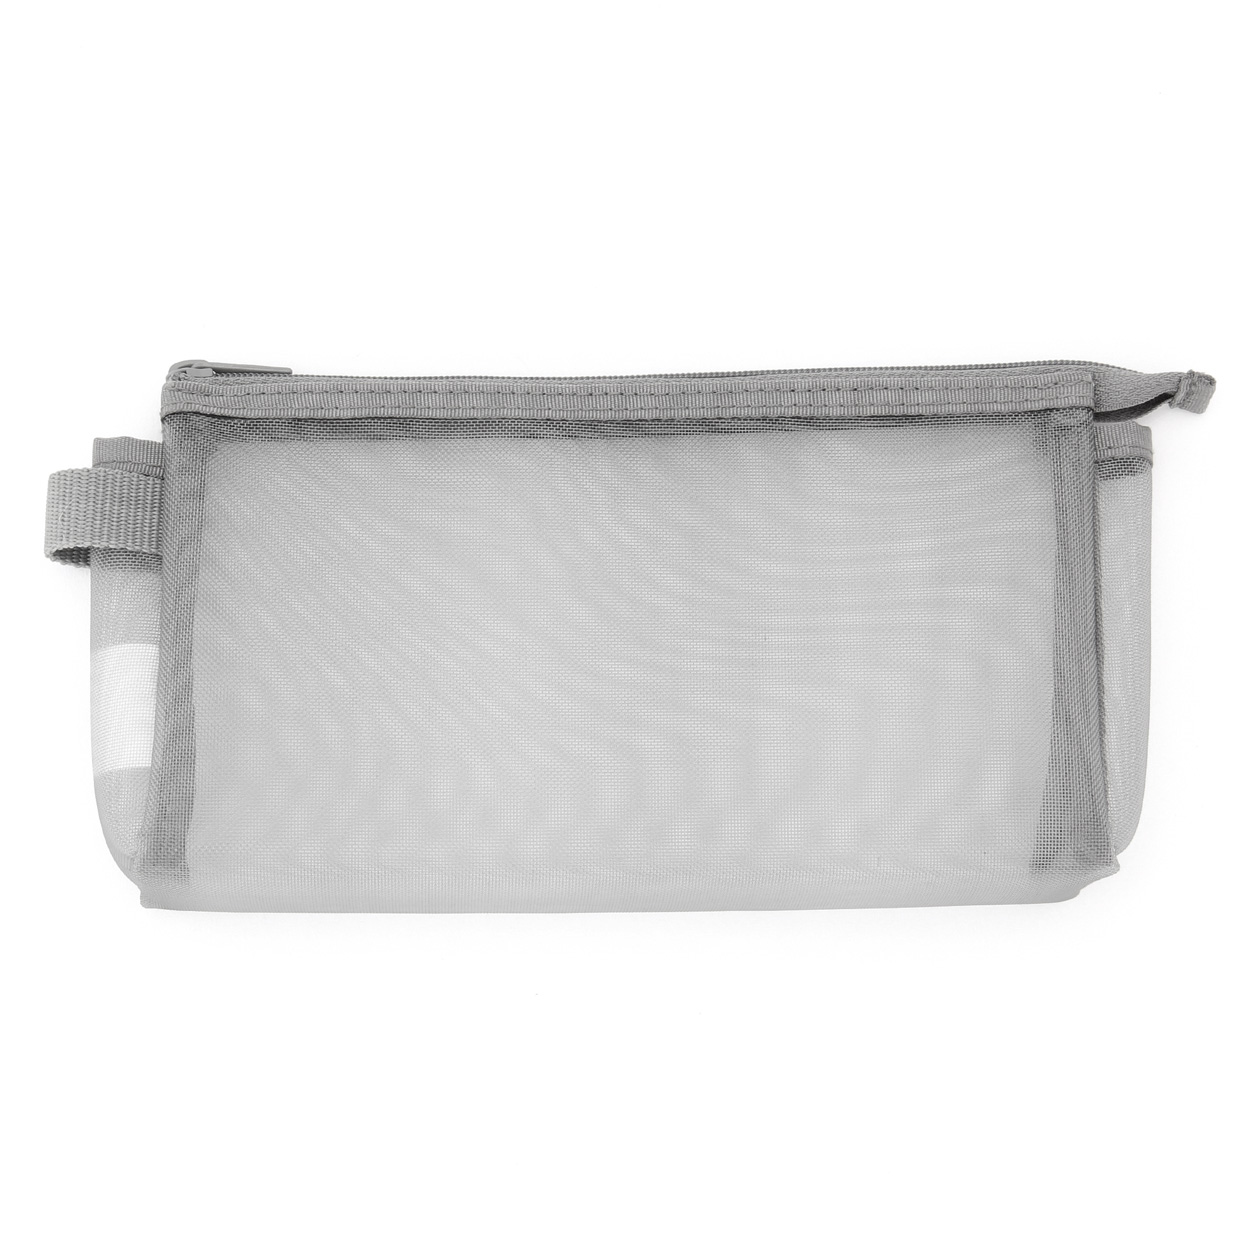 cb1dda185eb1f5 NYLON MESH PEN CASE WITH GUSSET | MUJI